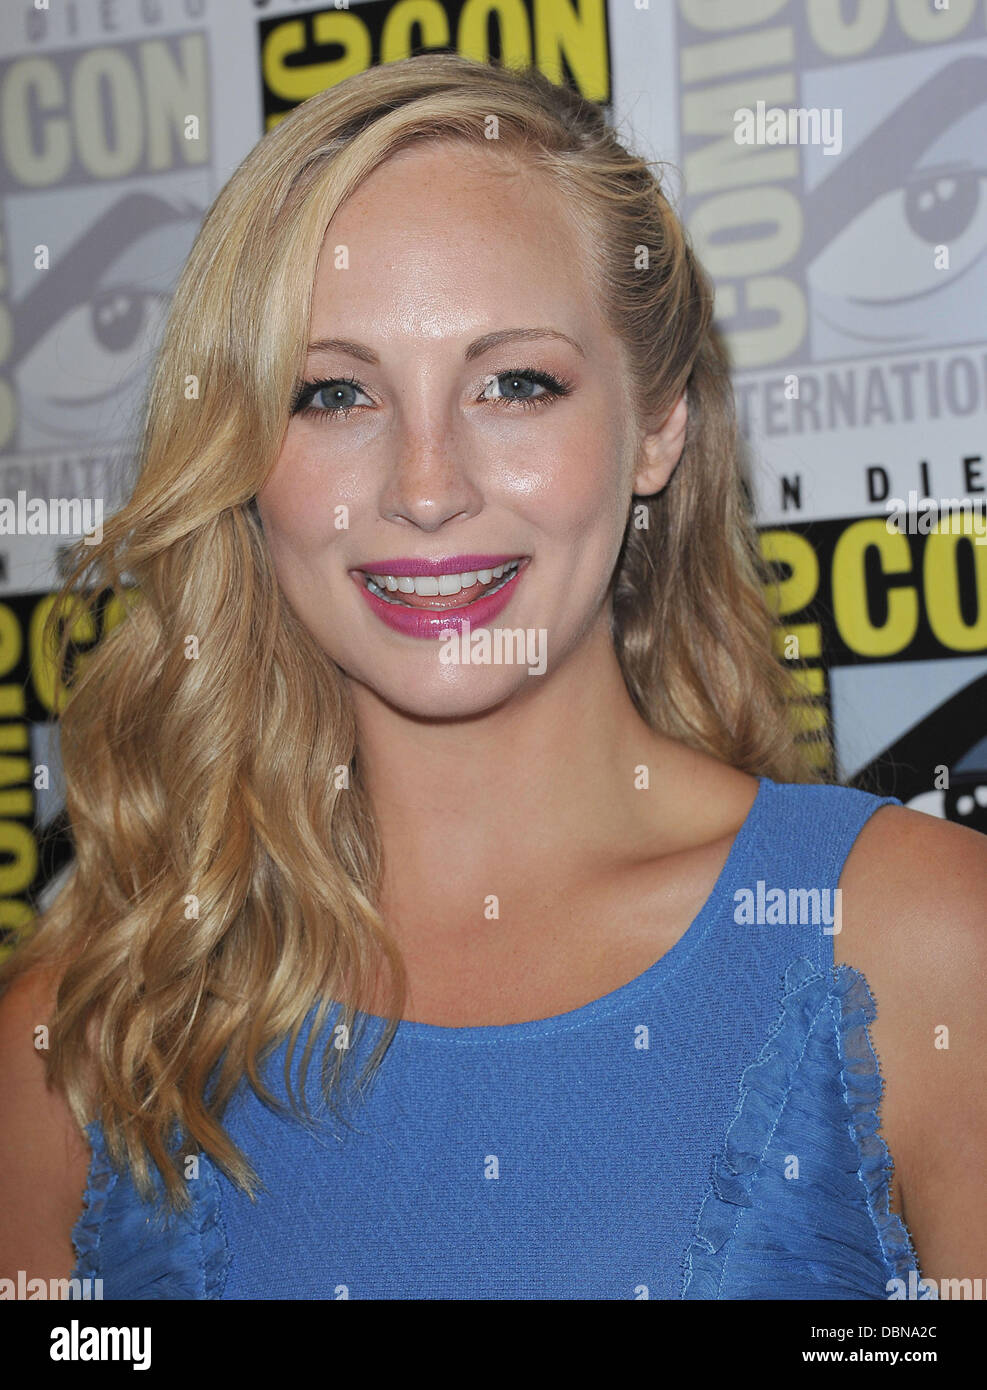 Candice Accola at the 'Vampire Diaries'  press conference at the Convention Center  Comic-Con 2011 - Celebrities - Stock Image